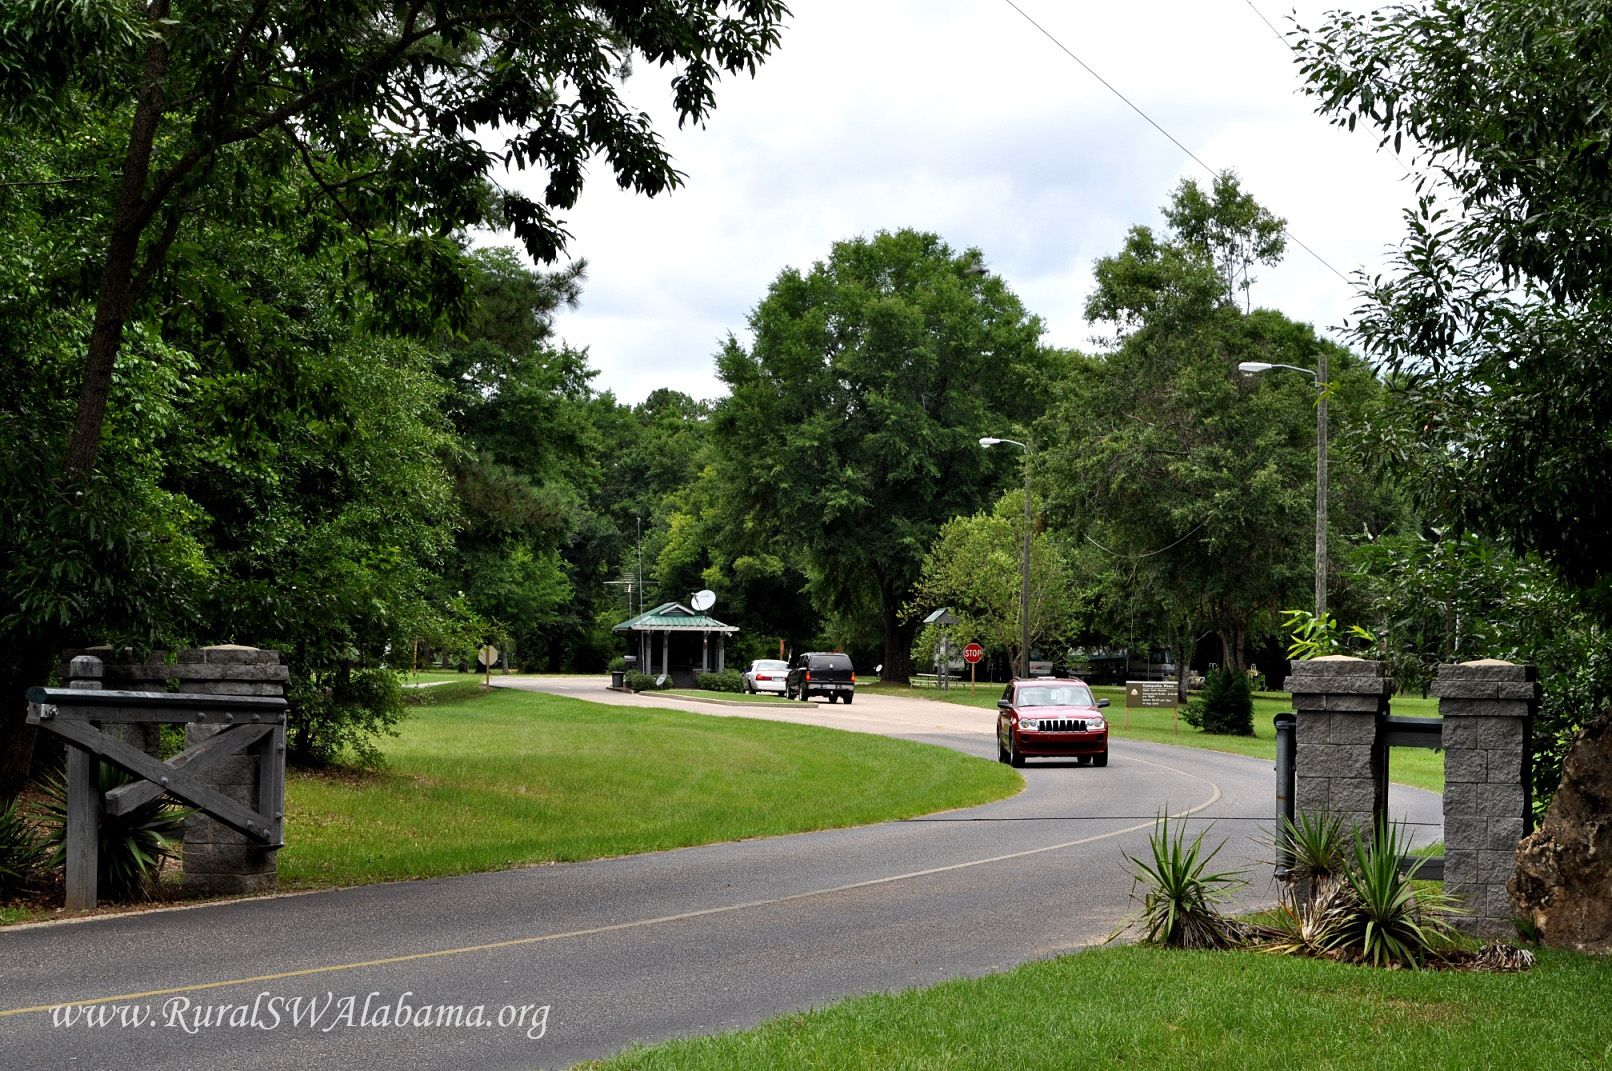 Alabama wilcox county camden - Millers Ferry Campground At Miller Ferry Al For Additional Details And Pictures Go